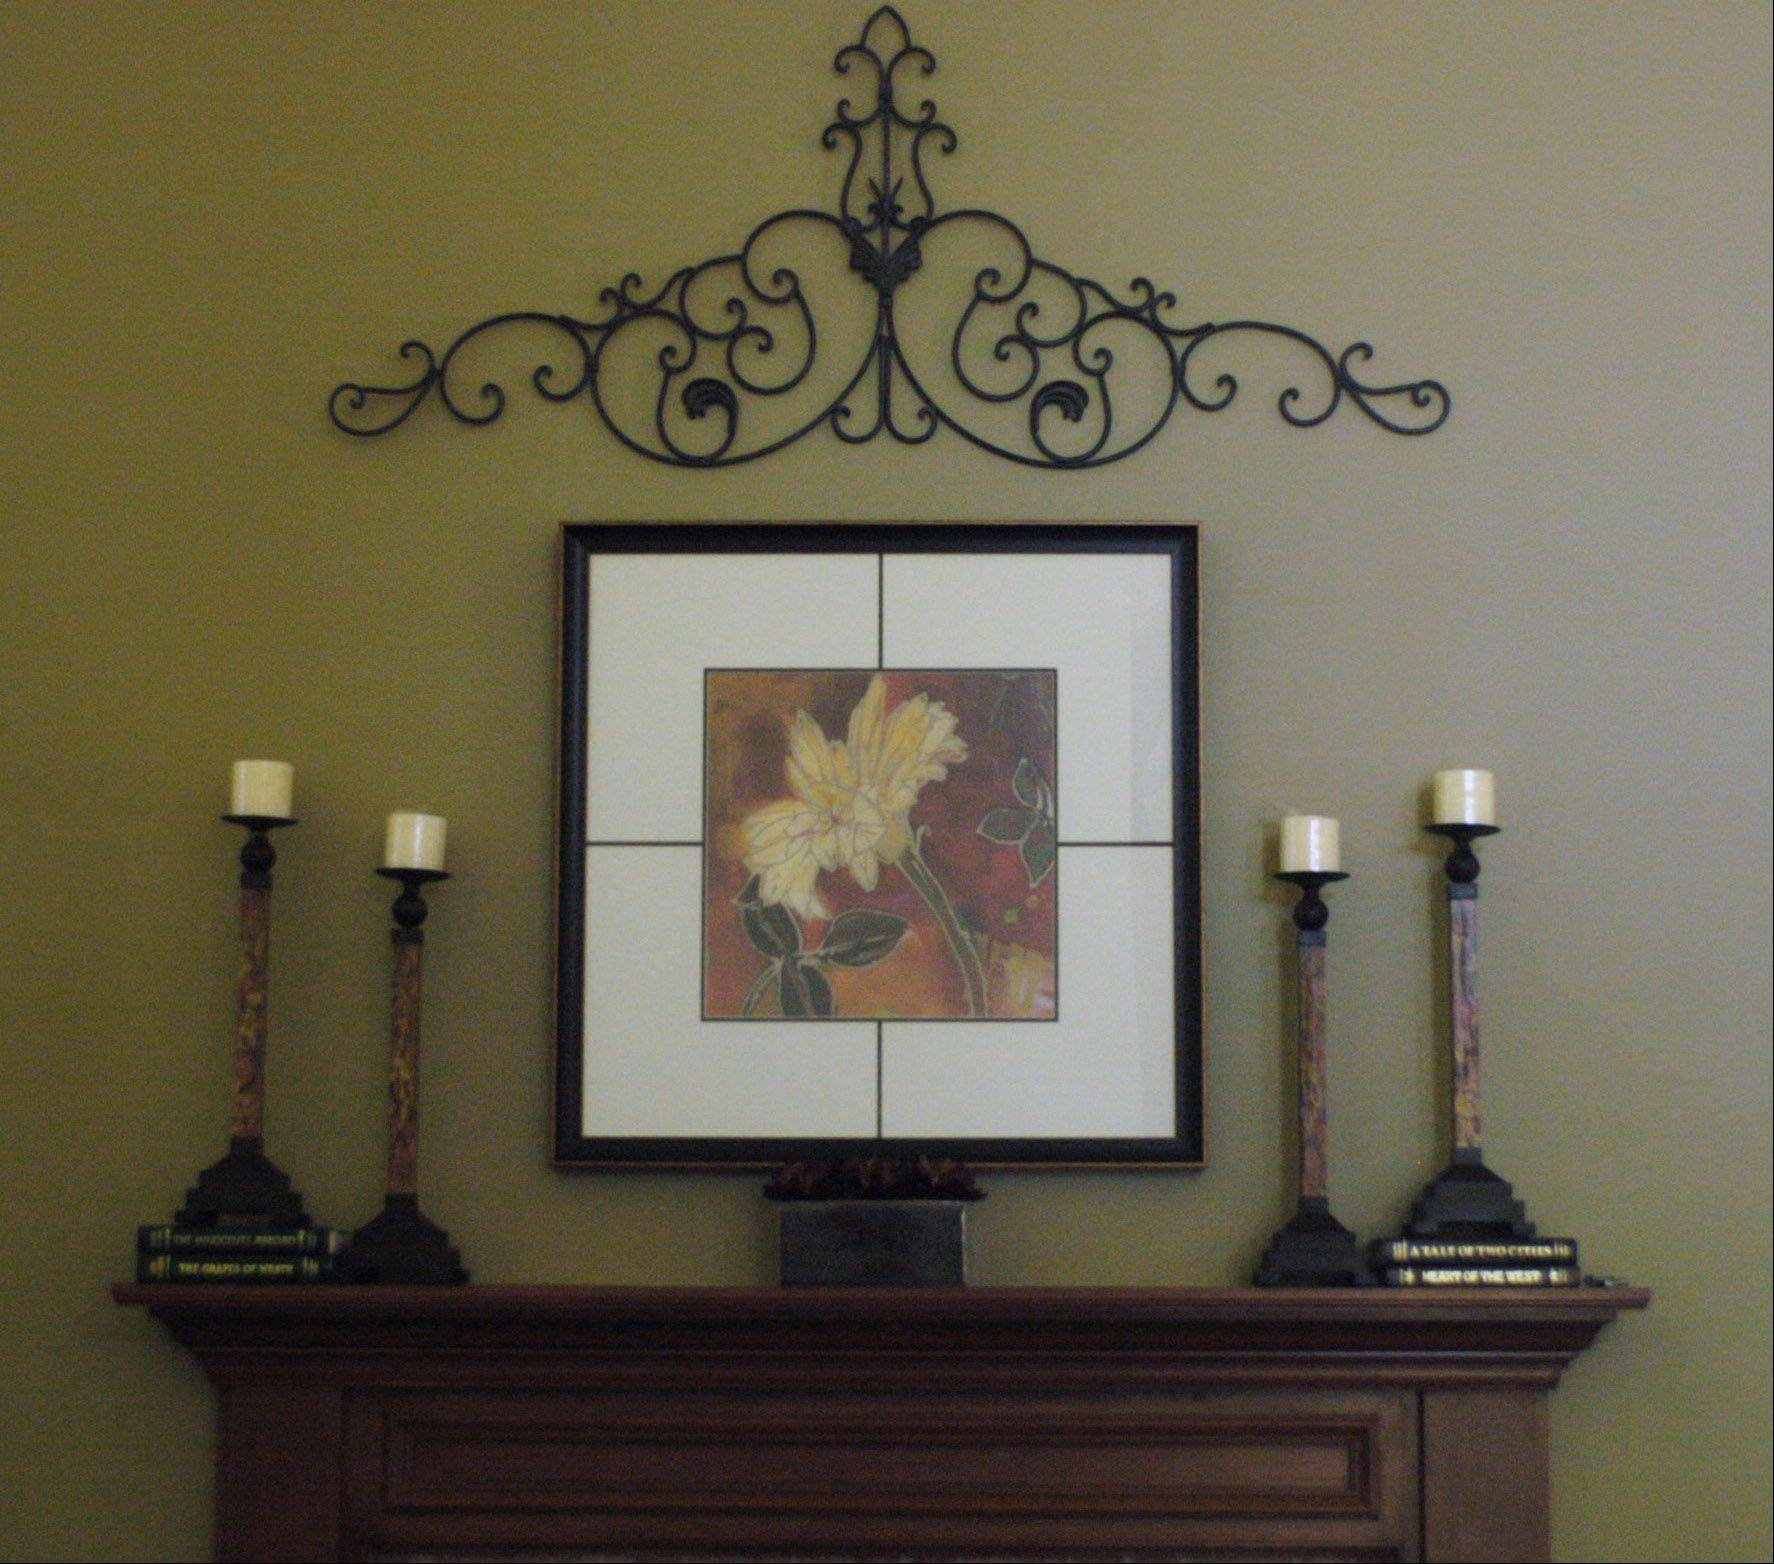 Deb Goetz likes the mixture of materials and symmetry of the vignette on the mantel.